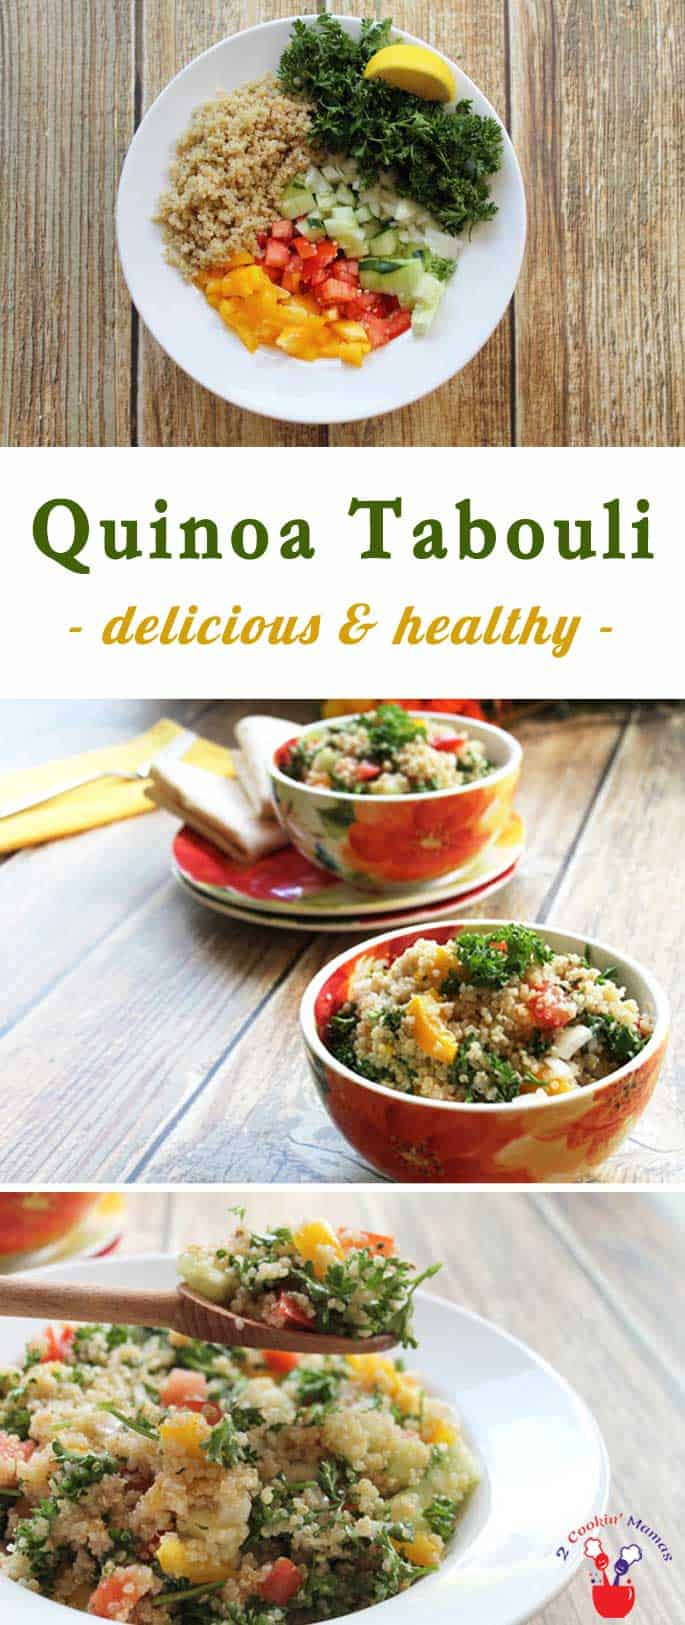 Quinoa Tabouli main | 2 Cookin Mamas Take tabouli to the next level with healthy quinoa! A nutrition packed salad high in protein, fiber and rich in antioxidants. #recipe